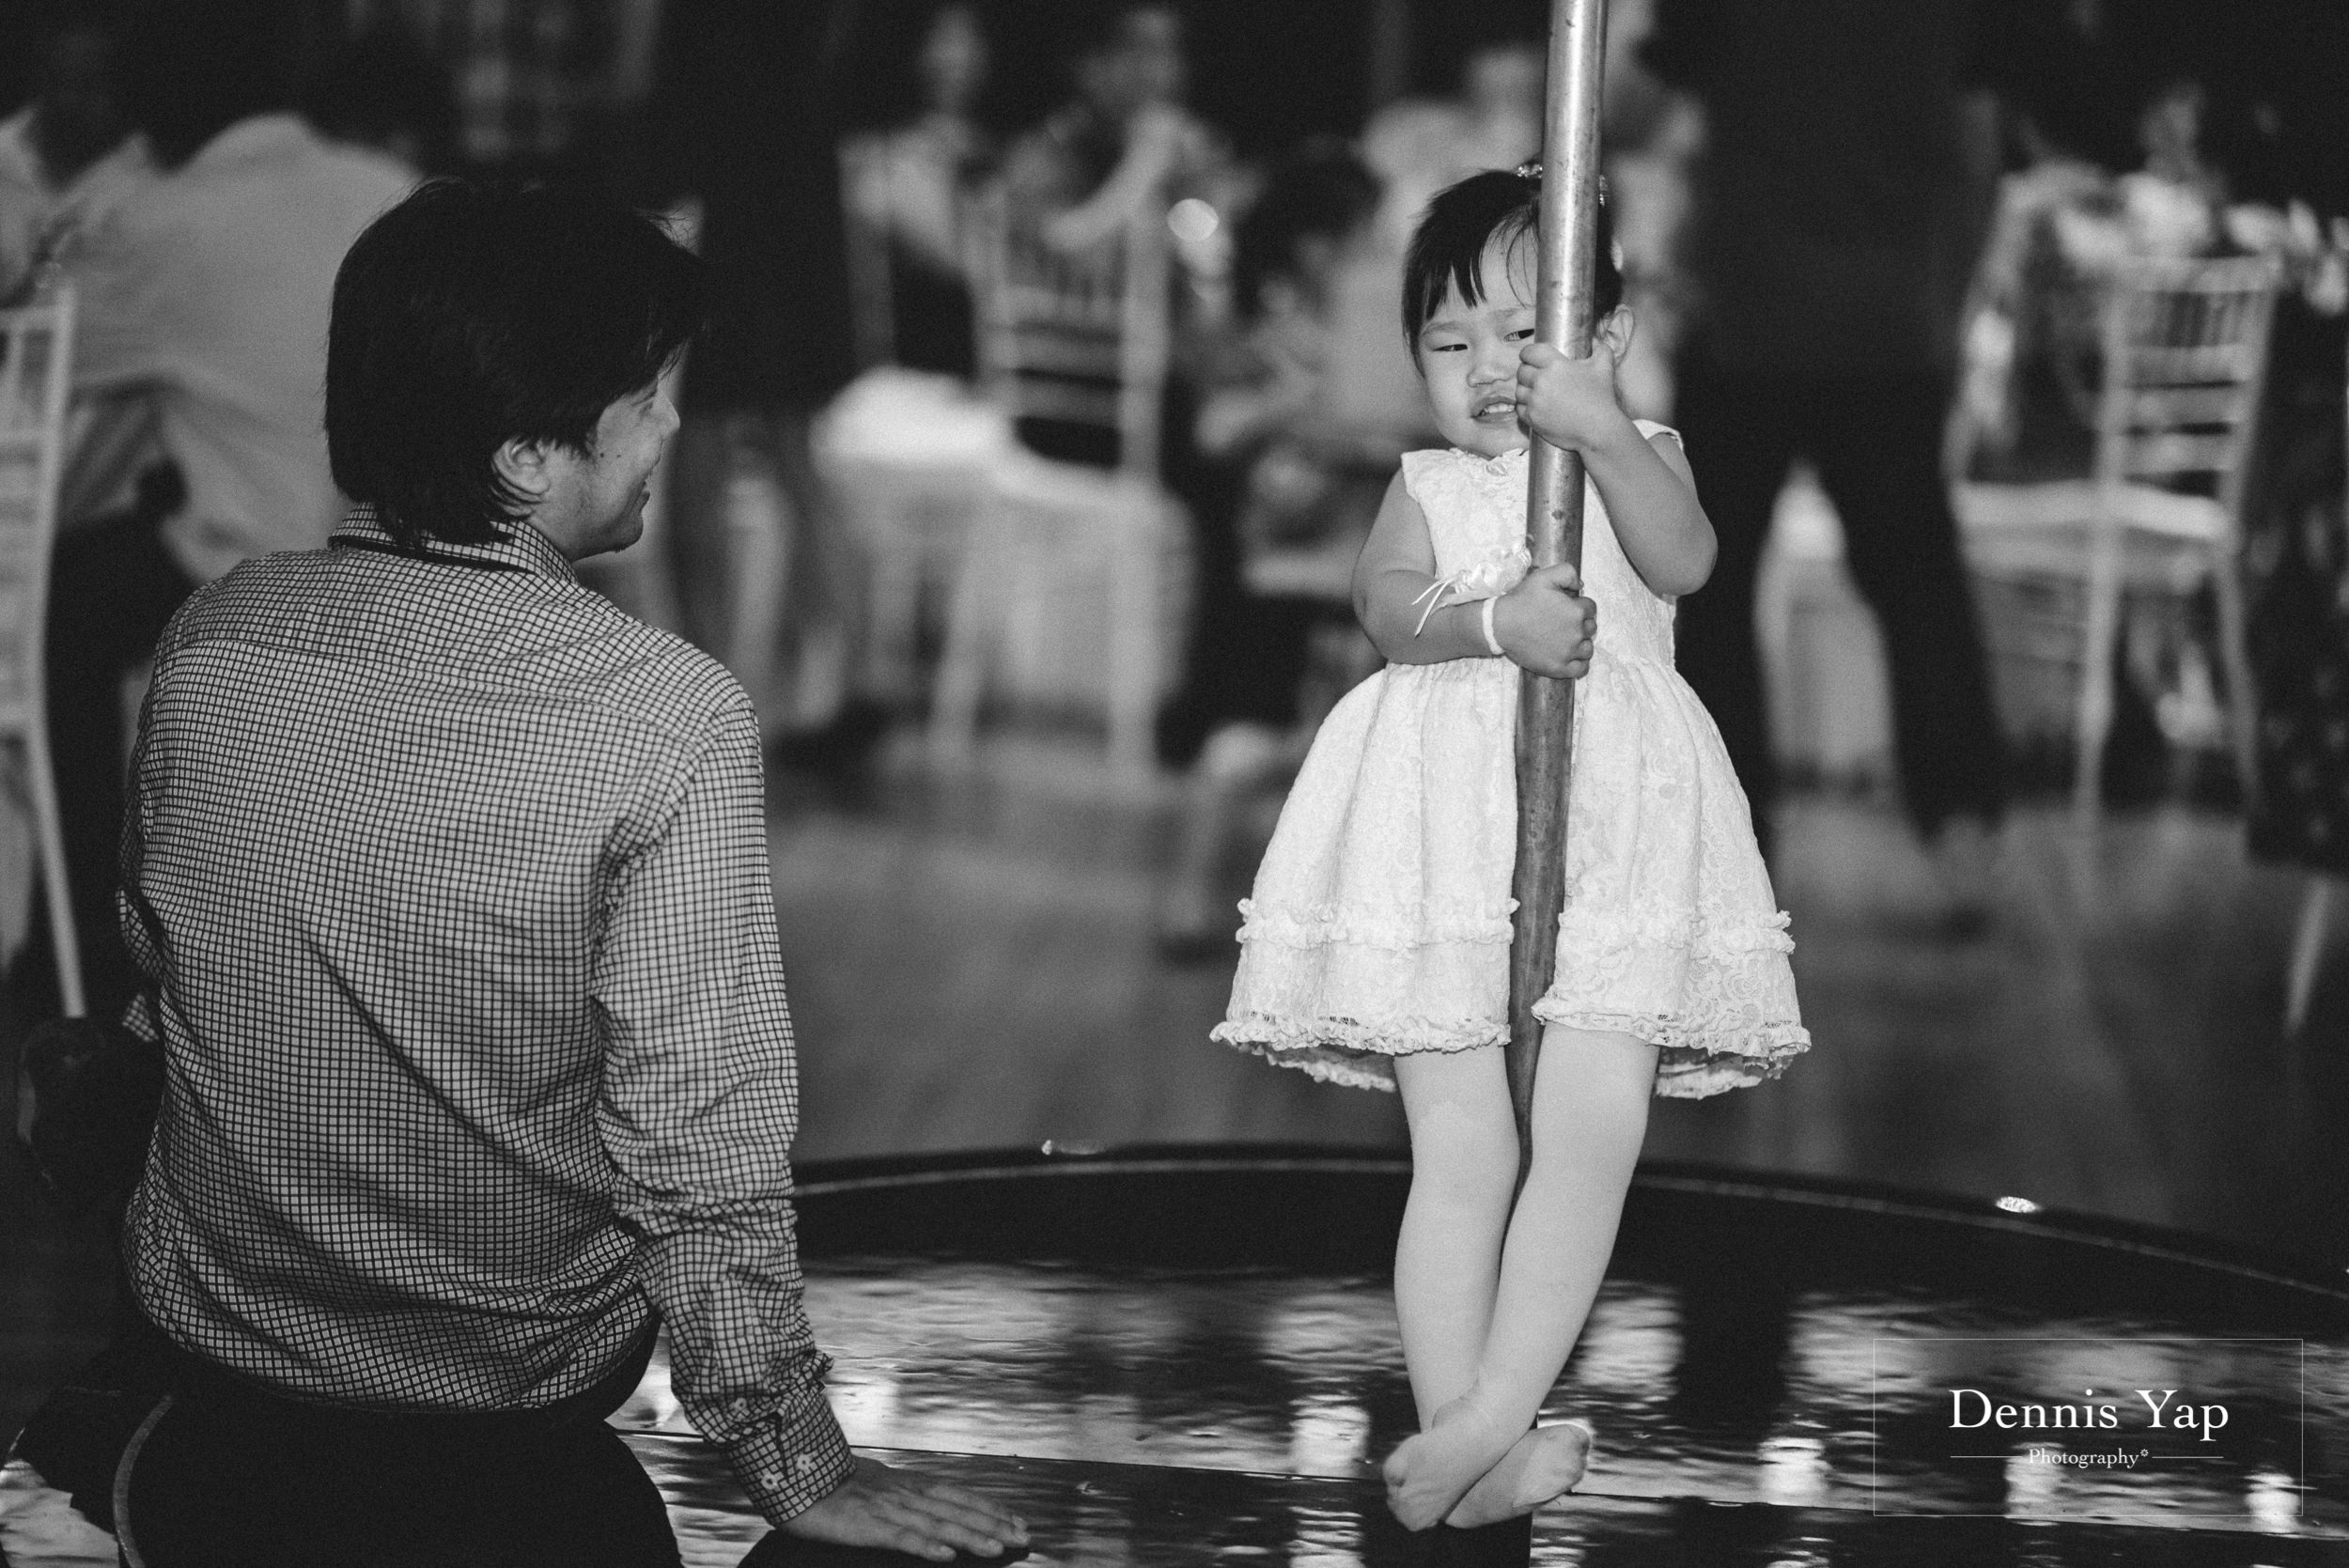 jung munn yein wedding day janda baik endarong dennis yap photography pole dancing malaysia-17.jpg